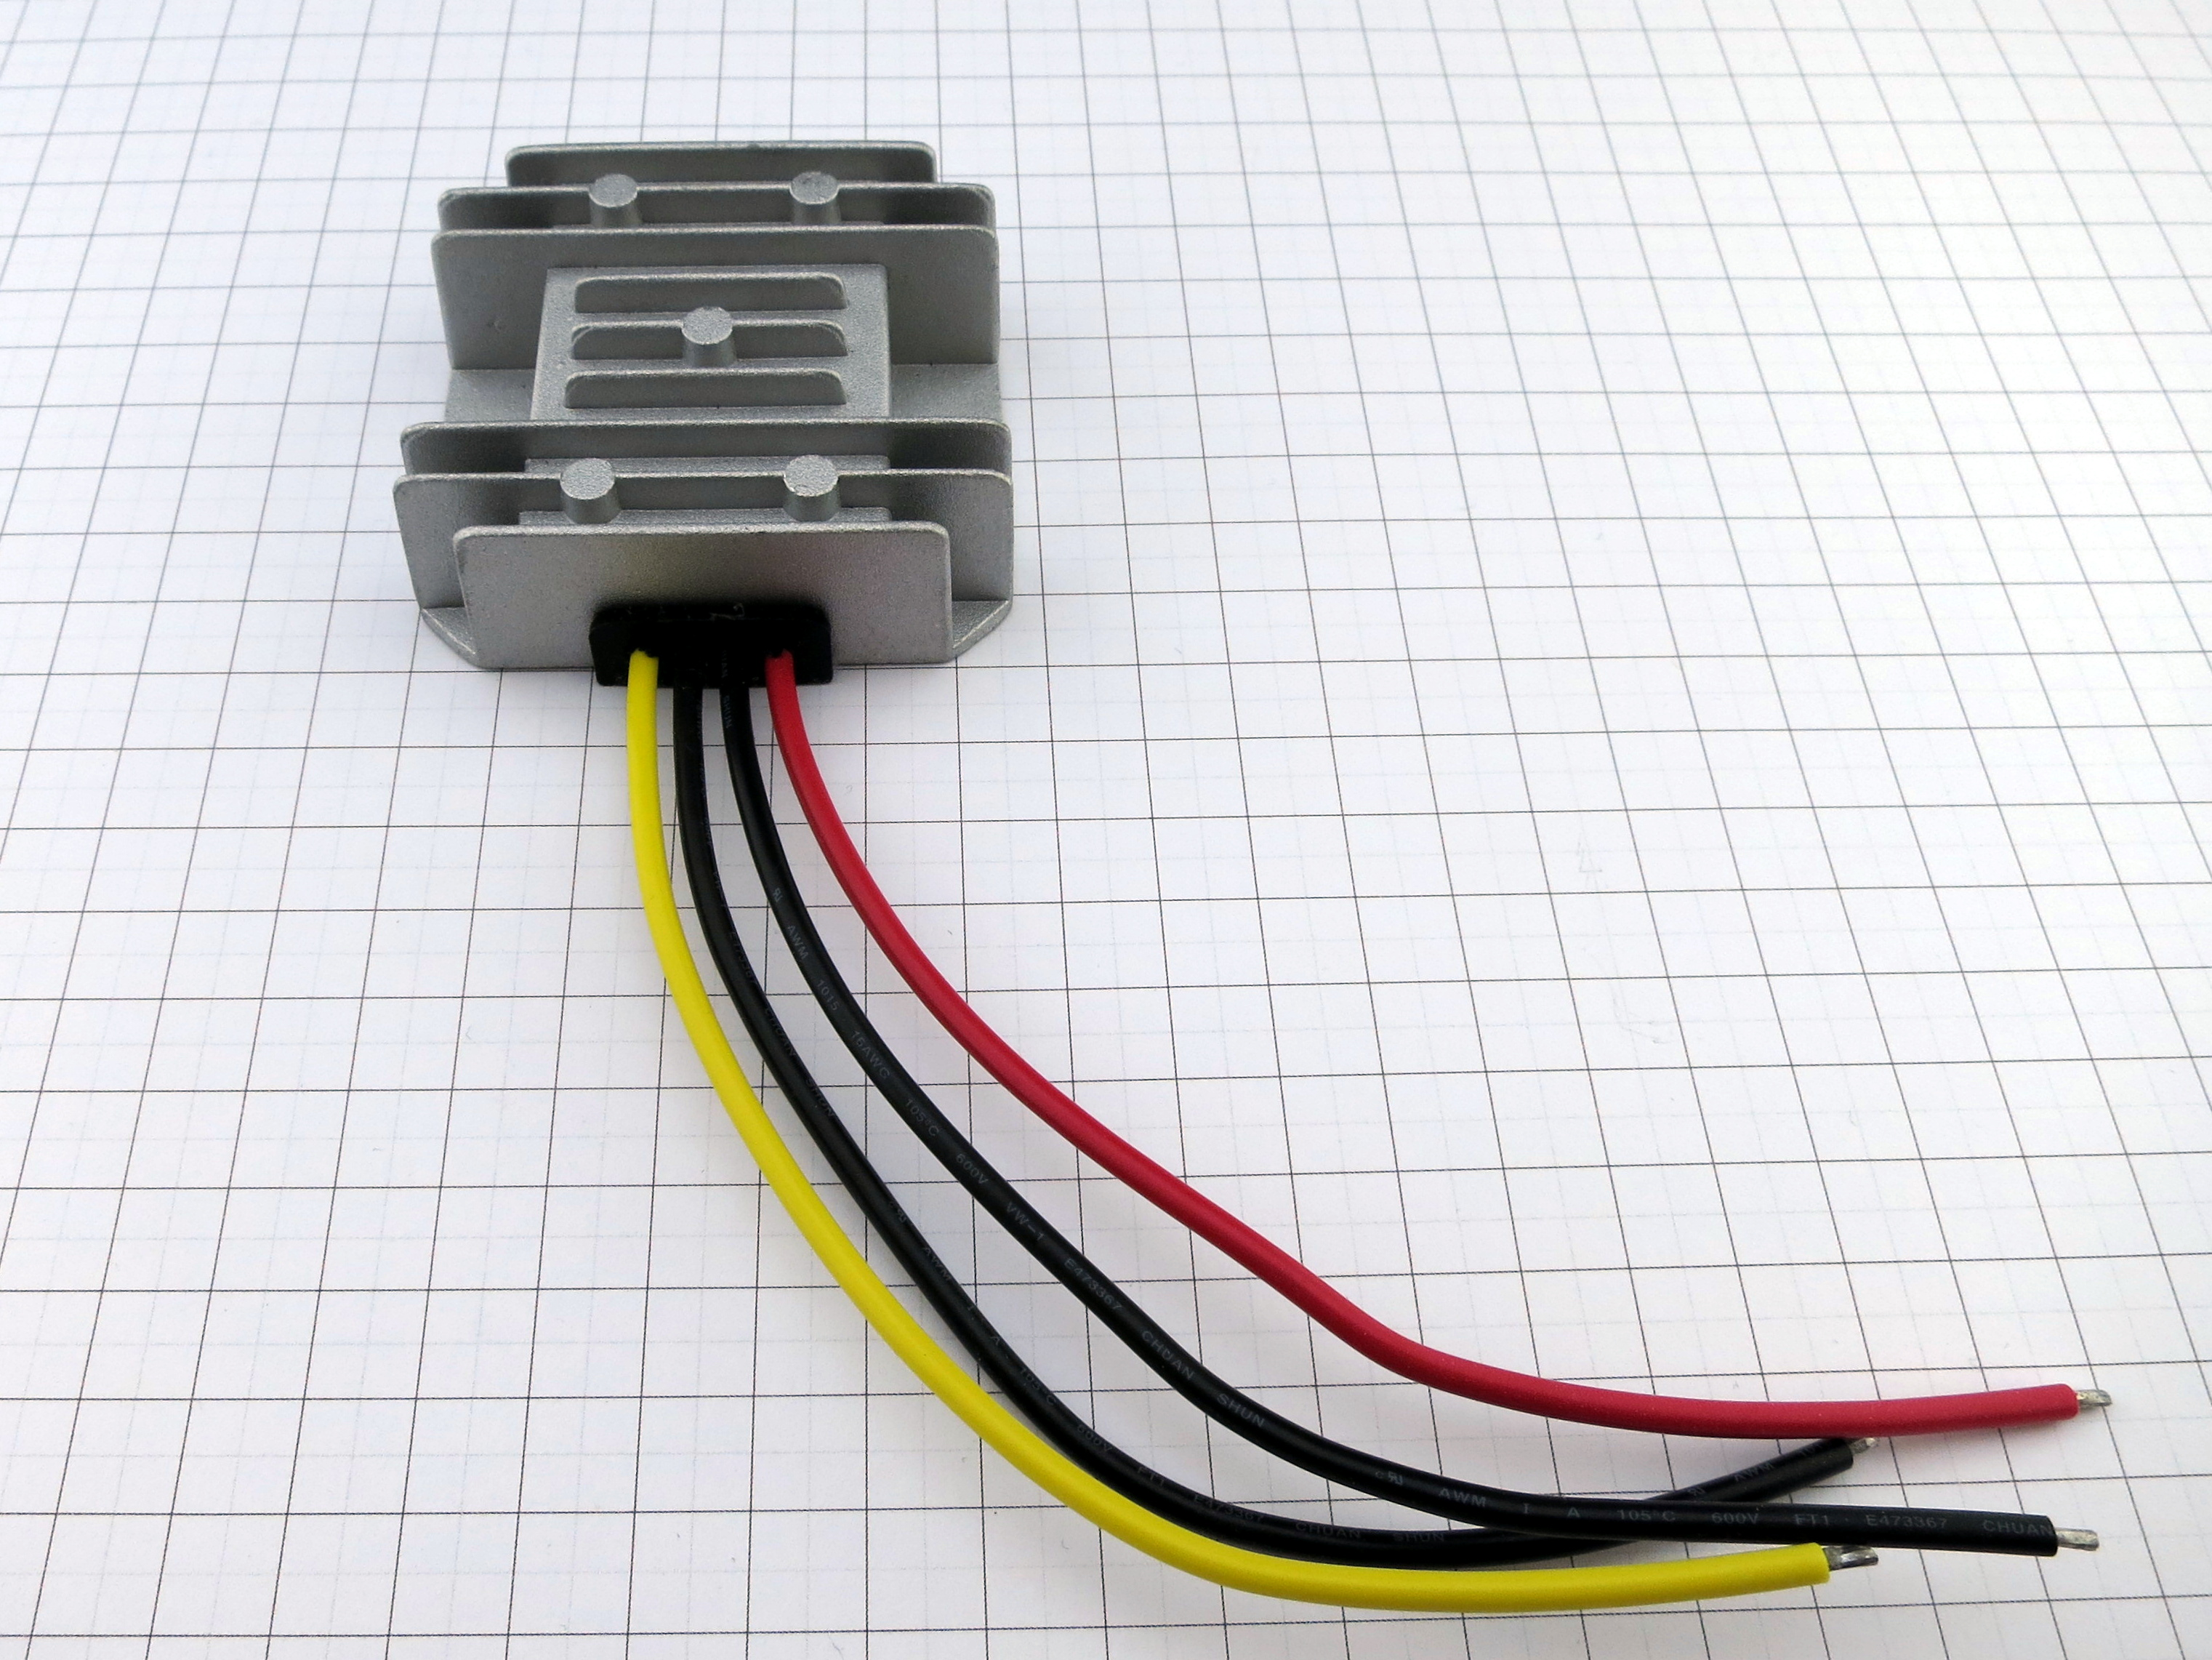 24v To 12v 5a 10a 120w Dc Converter Step Down Daygreen 1a 2a 3a Voltage Regulator The Power Supply Is Essentially Same Anyway Heres Brick